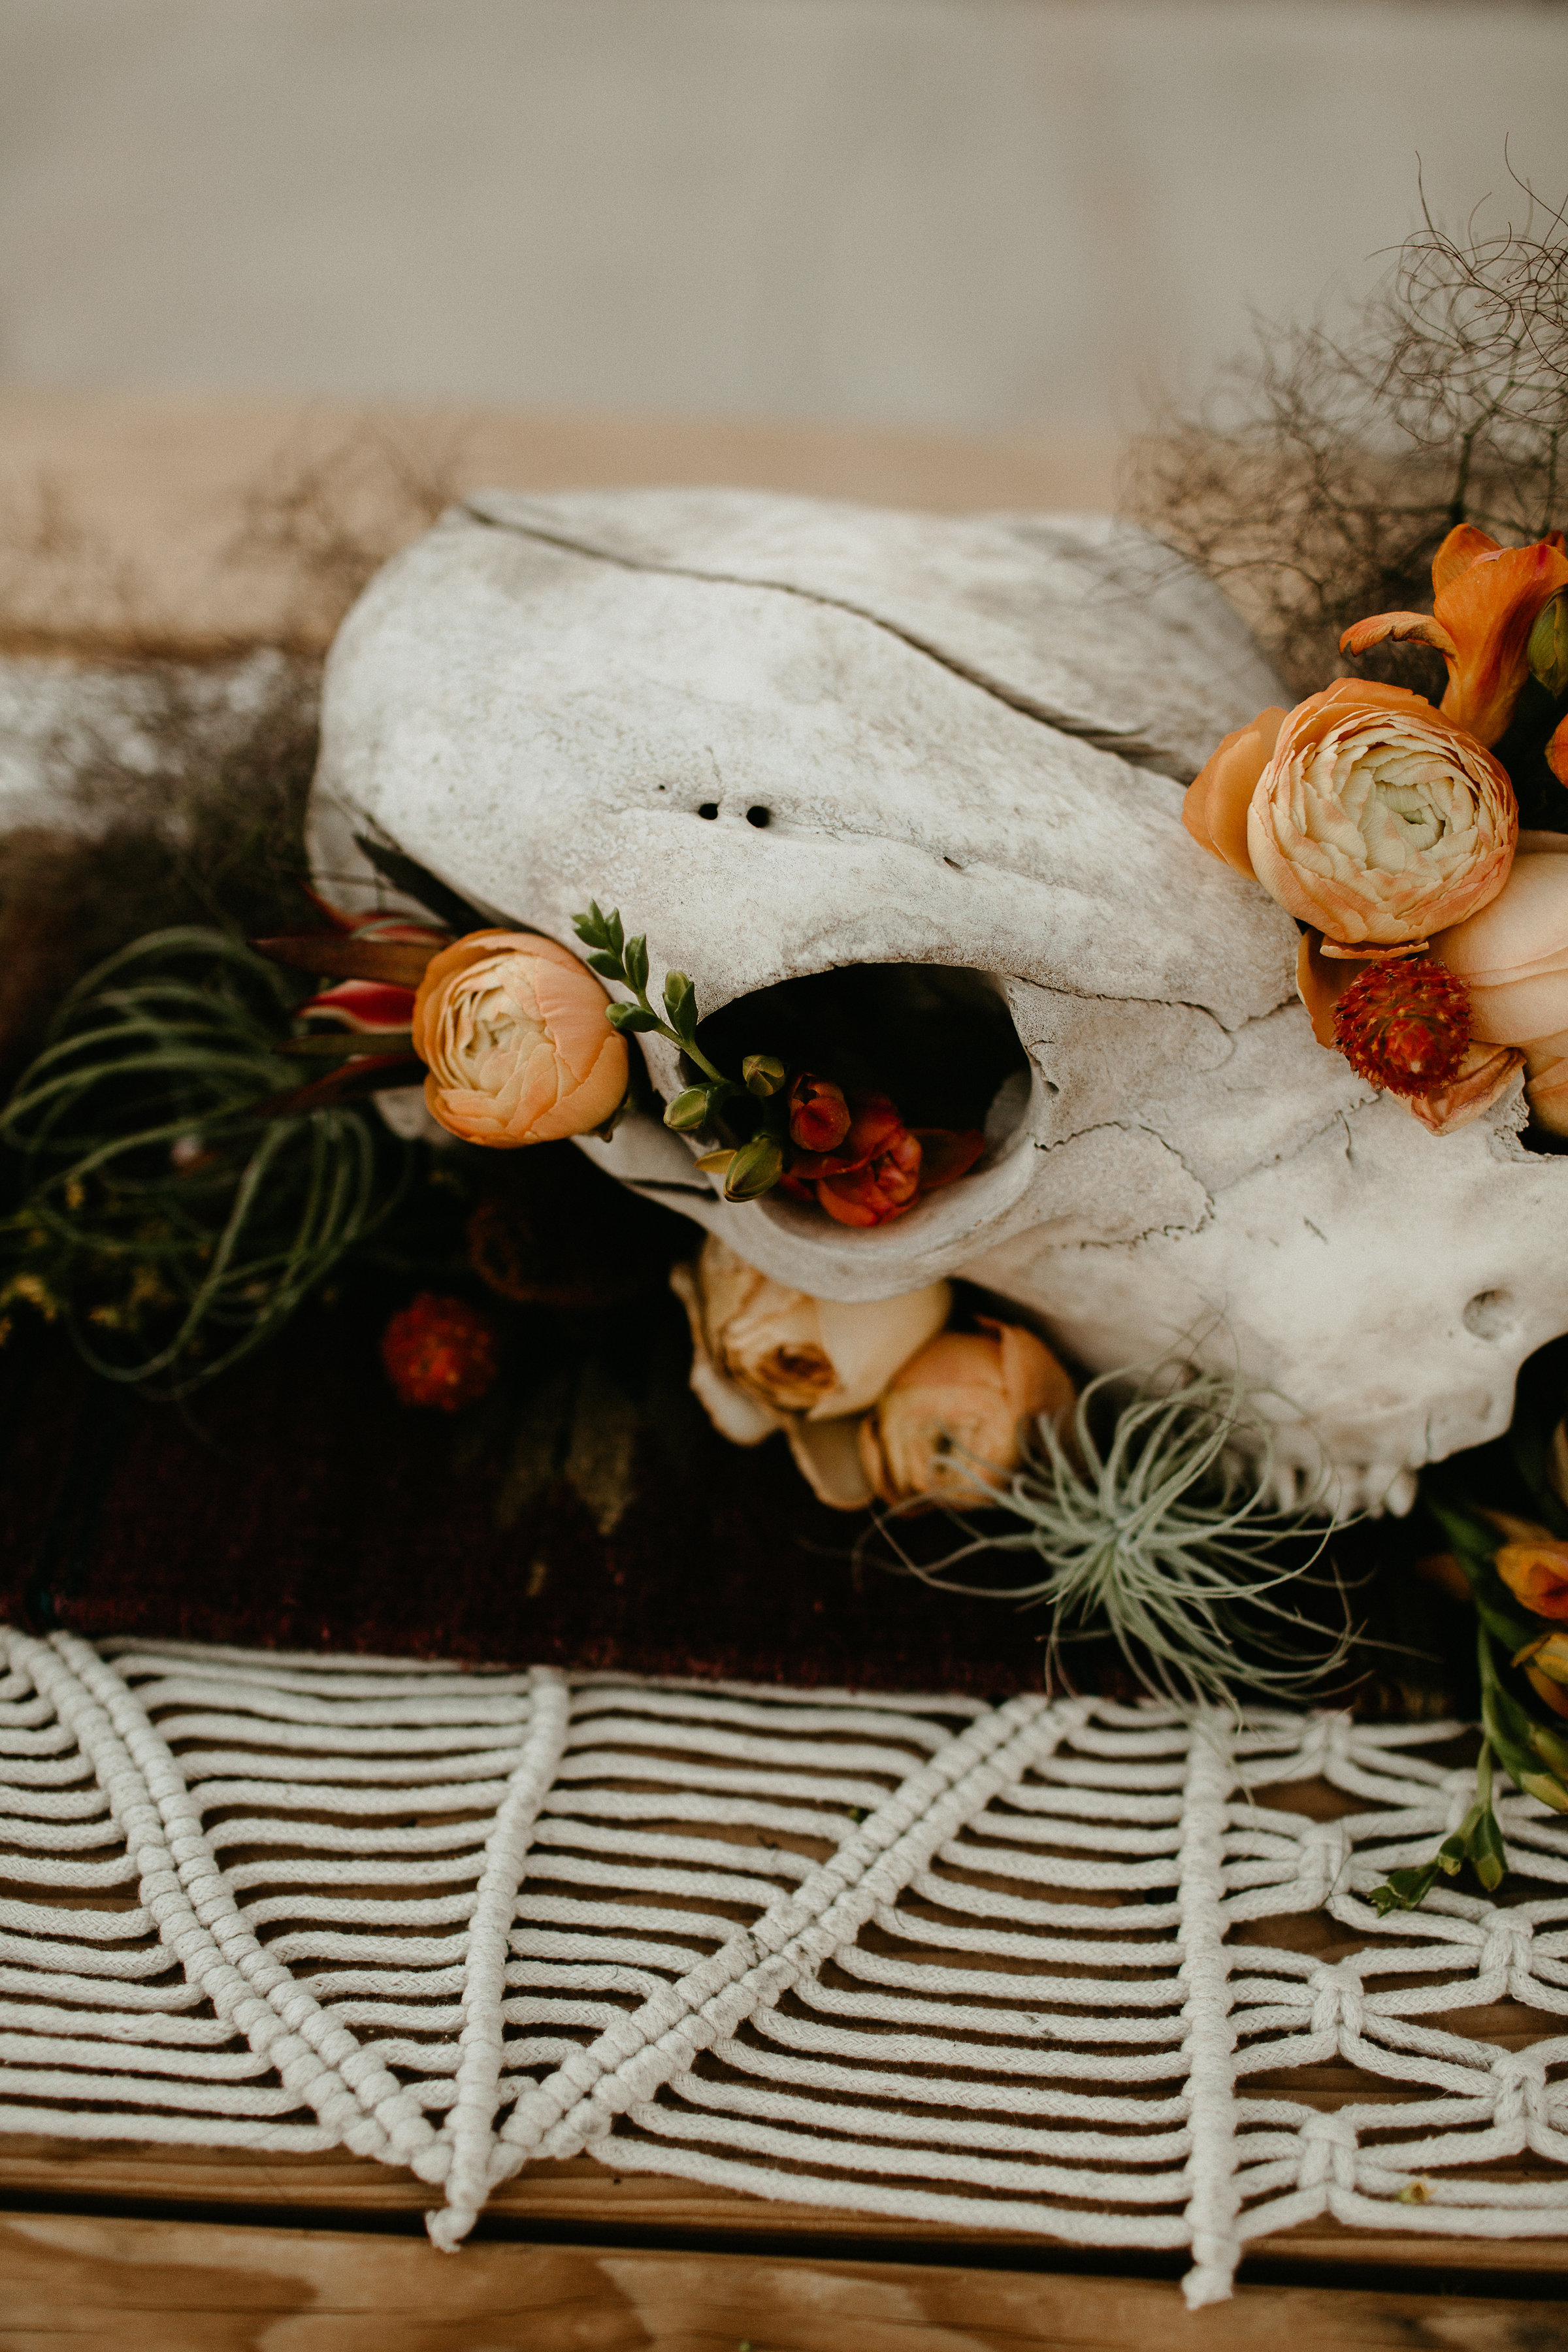 western wedding skull centerpiece with airplant #lrqcfloral #airplant